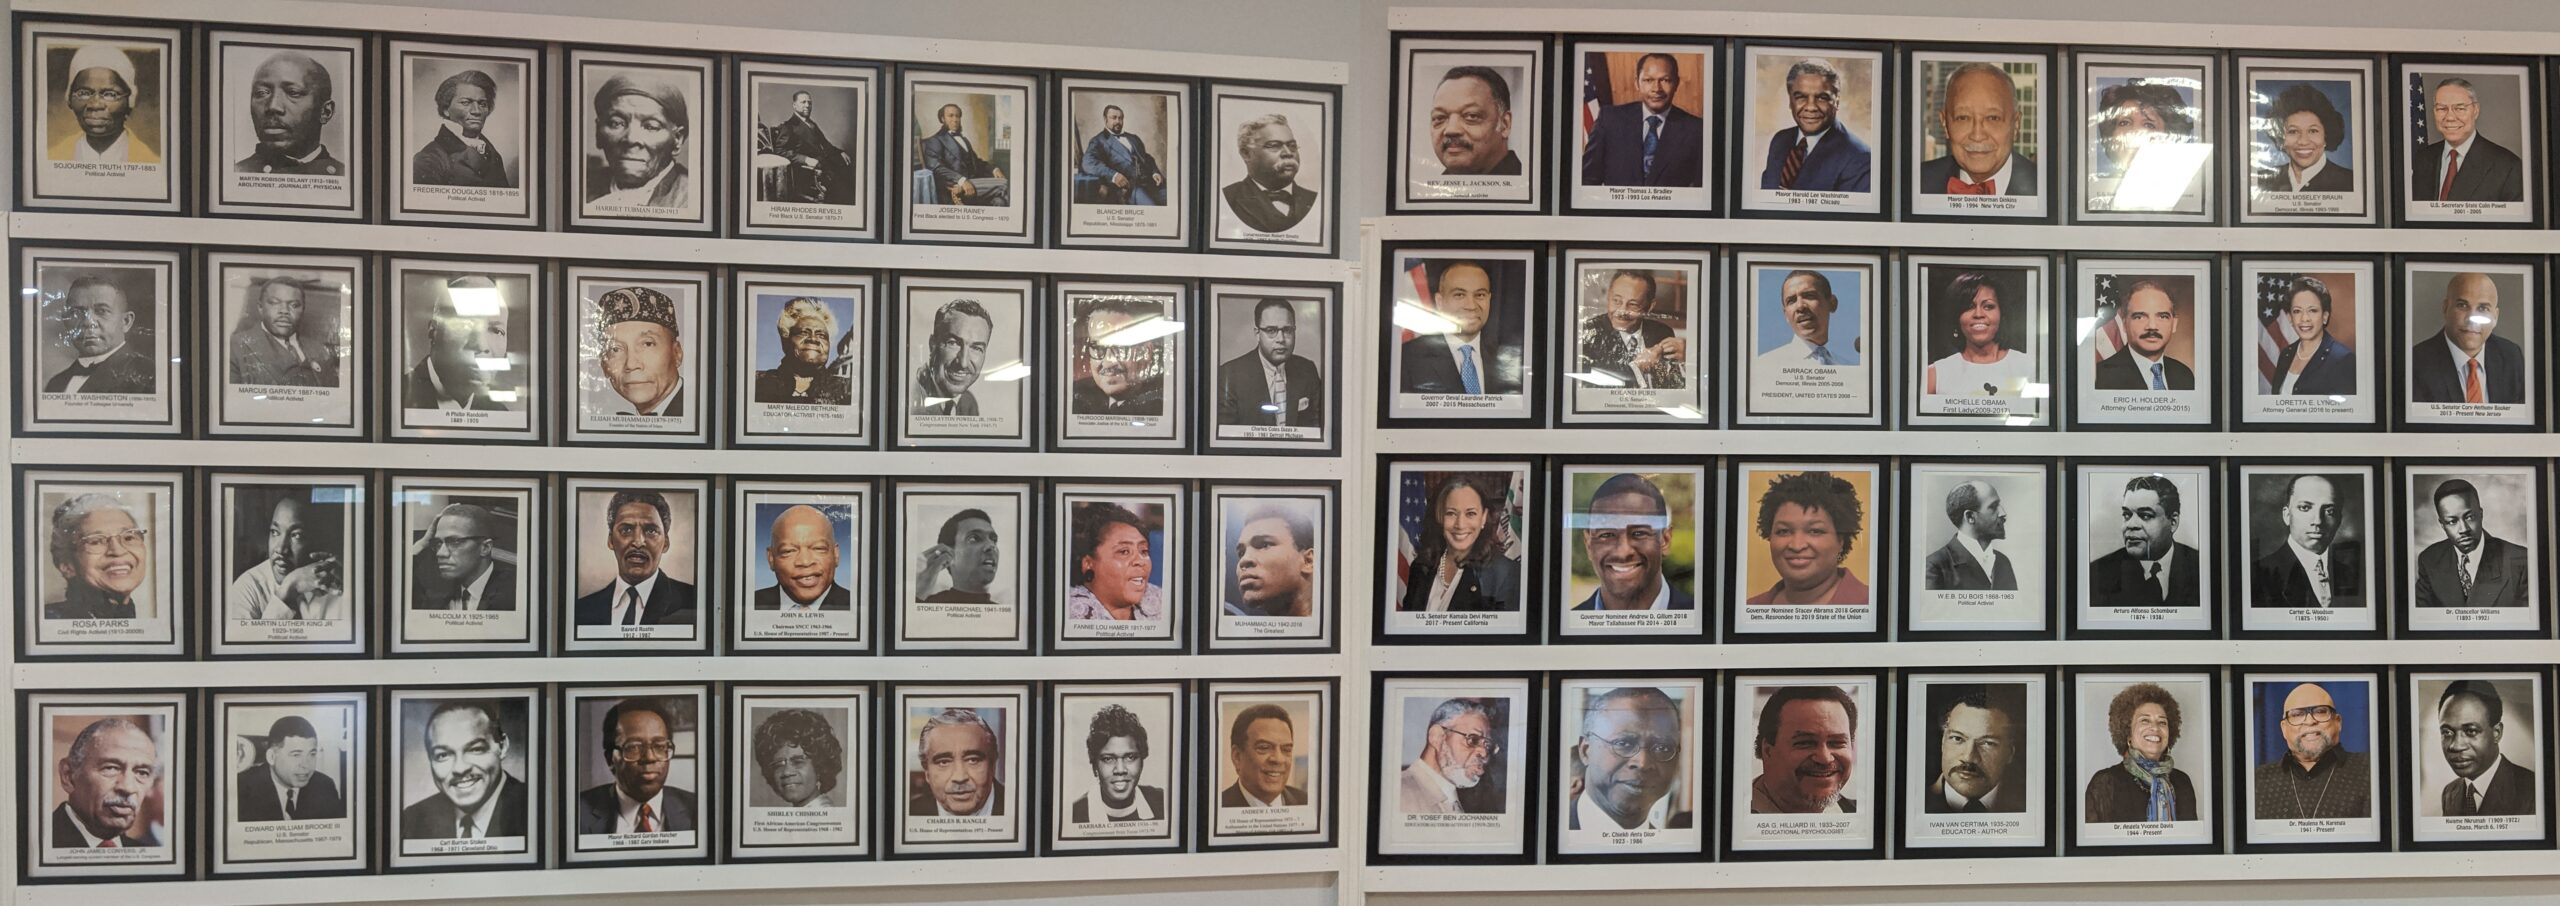 Wall of Leaders & Scholars